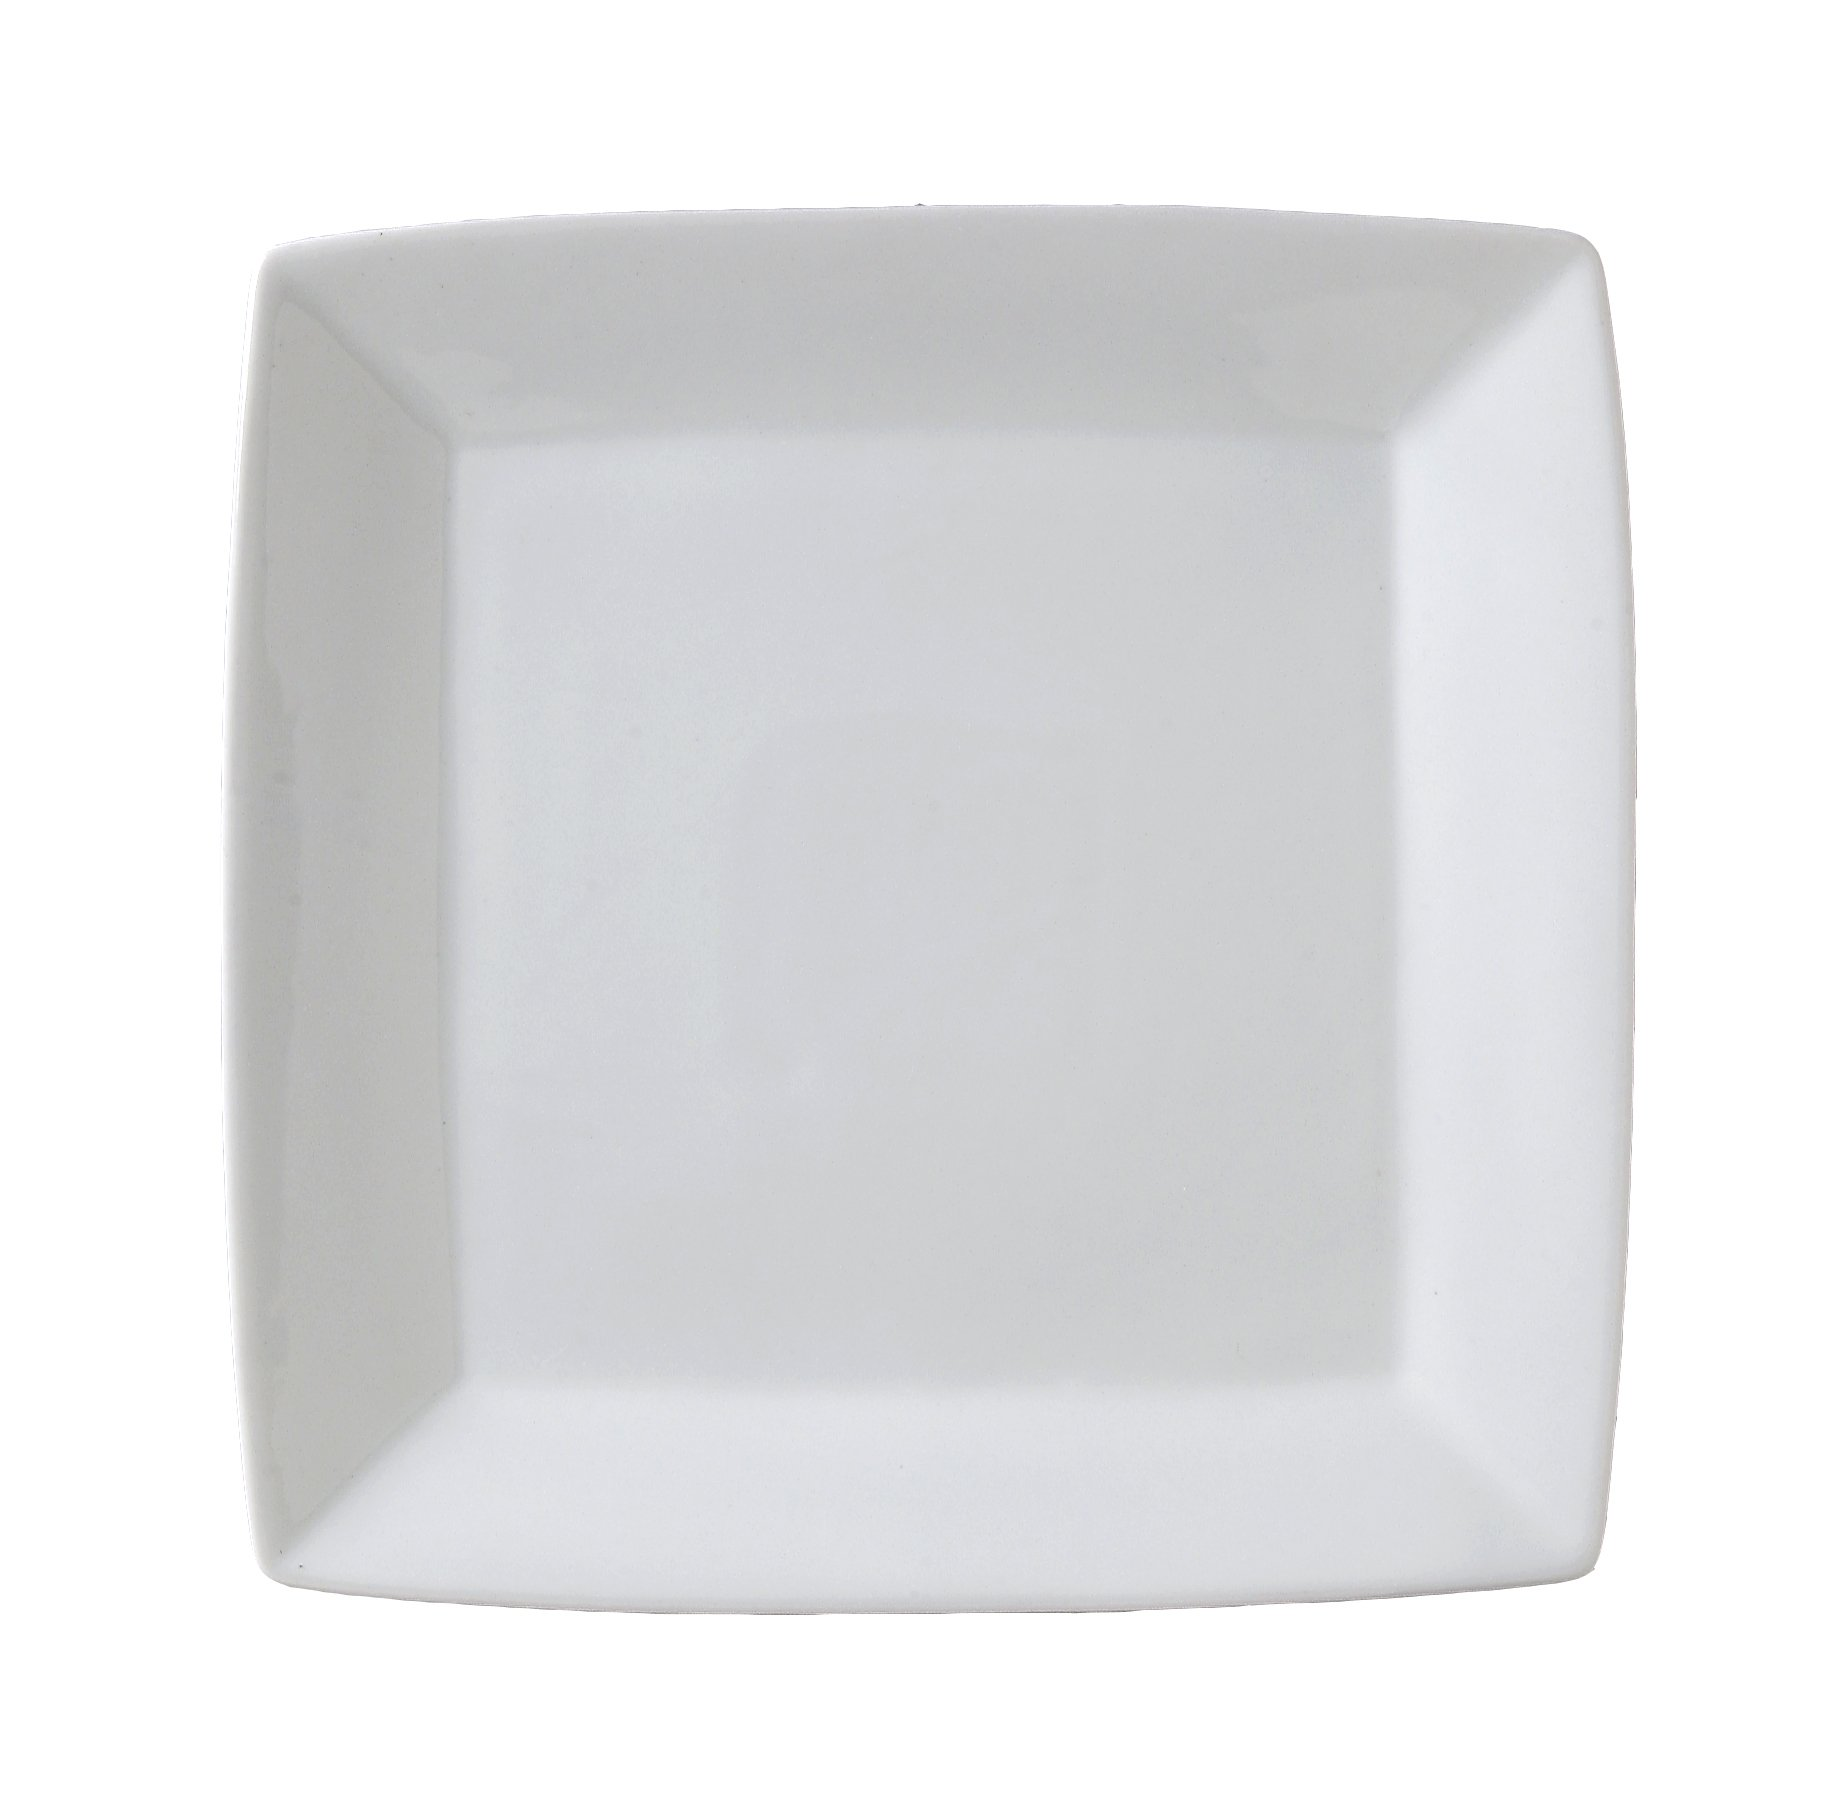 Vertex China ARG-S6P Signature Square Plate without Embossed, 6'', Porcelain White (Pack of 36)